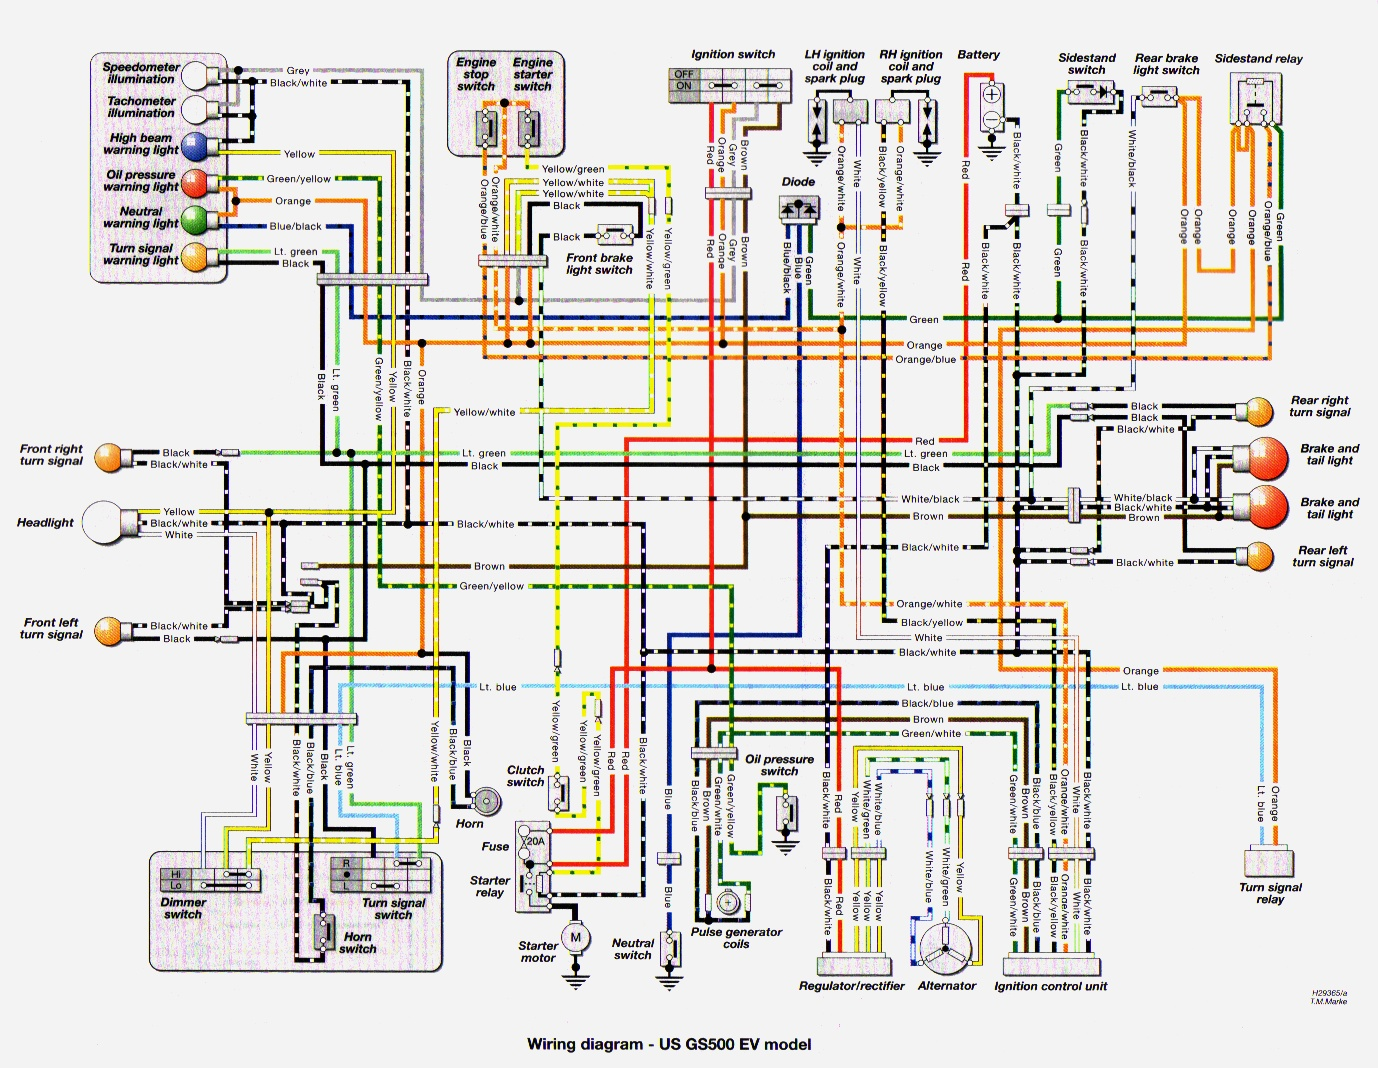 rf900 wiring diagram wiring diagramrf900 wiring diagram wiring diagrams lolrf900 wiring diagram data wiring diagram gs750 [ 1378 x 1068 Pixel ]